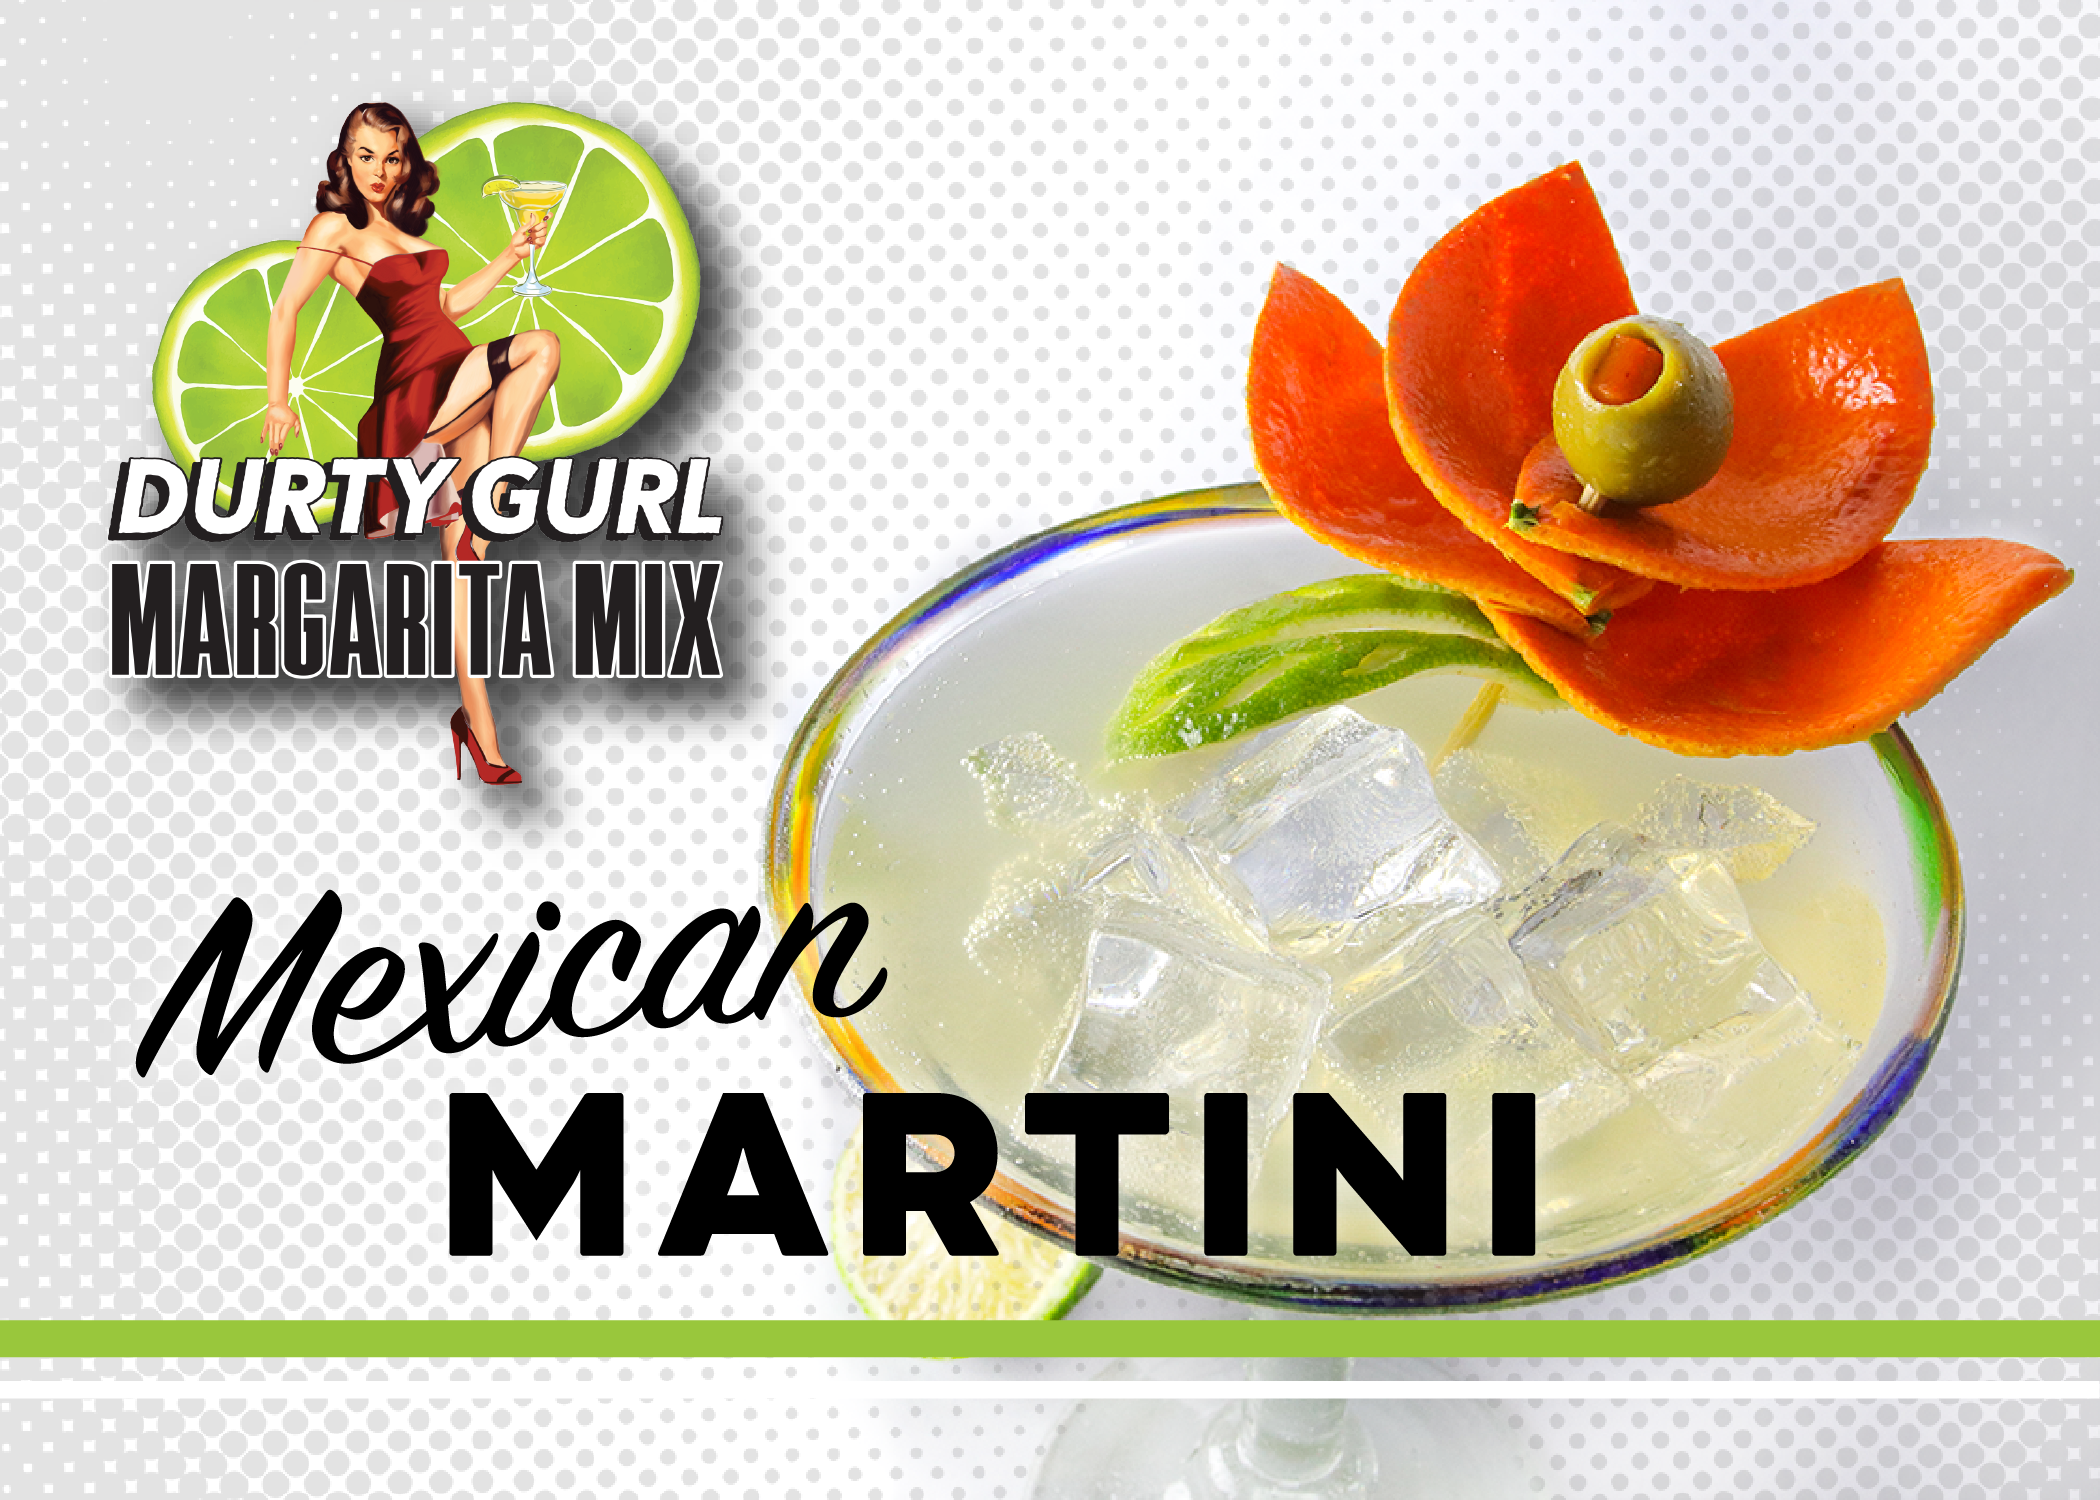 MexicanMartiniRecipe-01.png